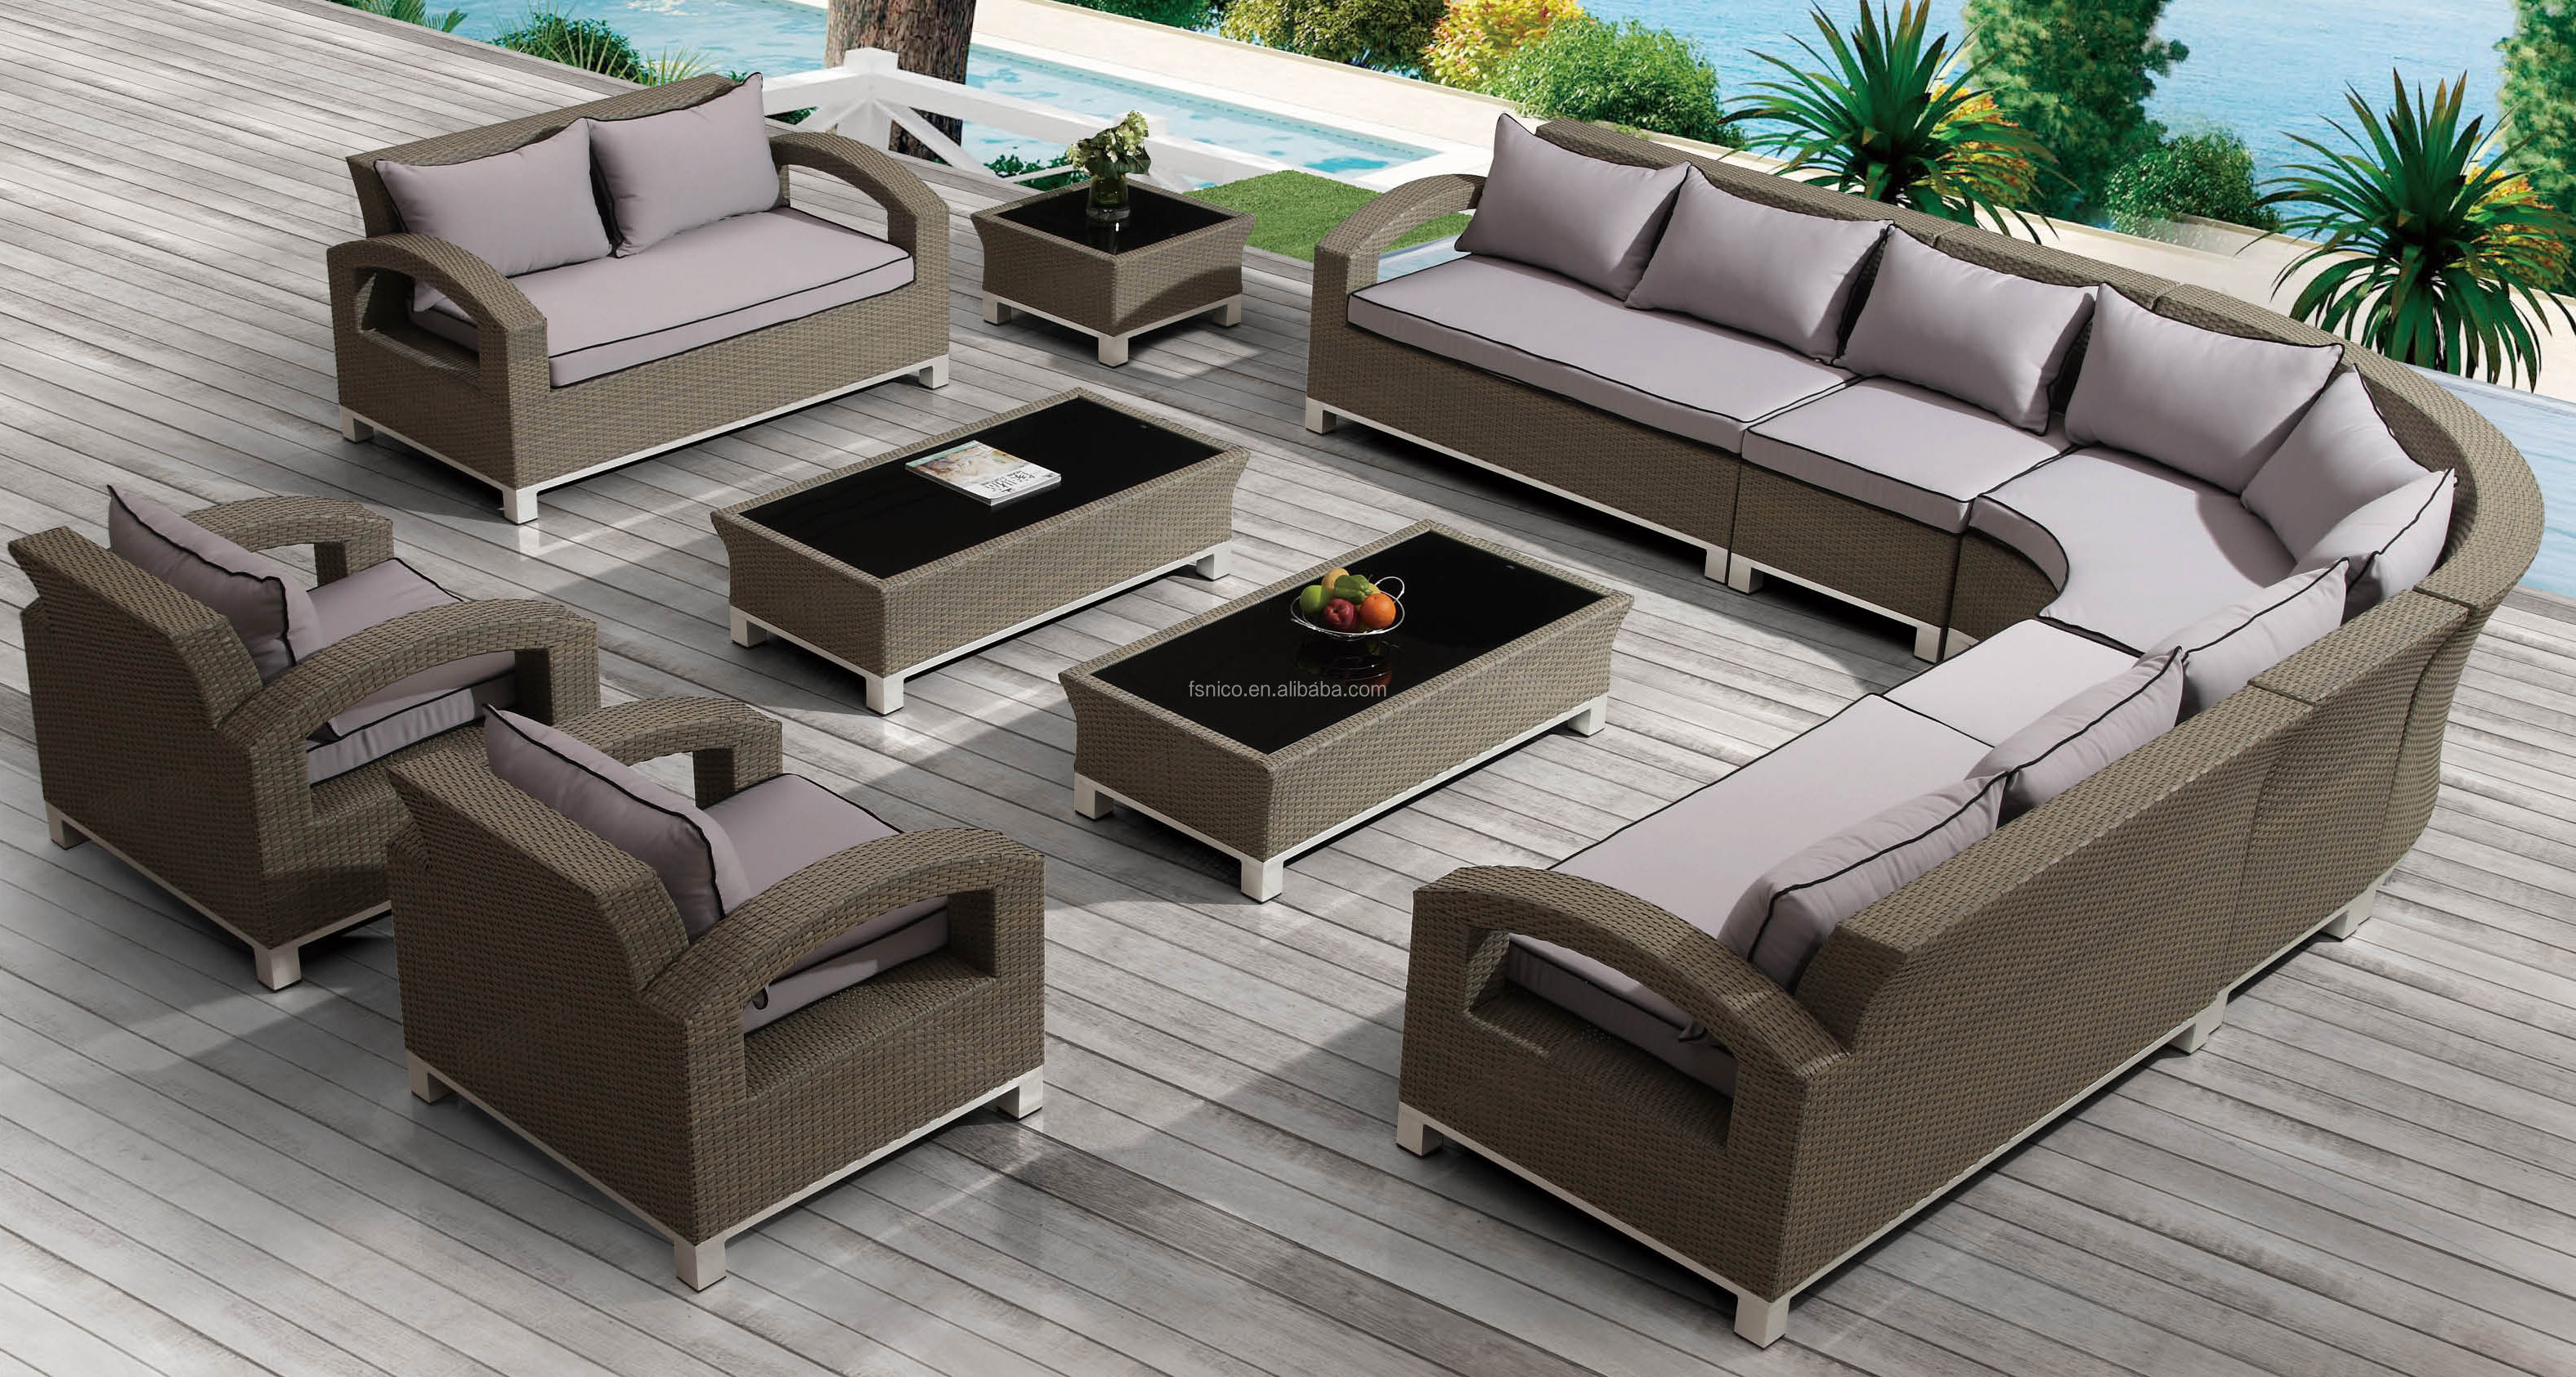 lowes modern patio broyhill outdoor furniture extra large garden set rattan sofa view lowes patio furniture nico art rattan product details from